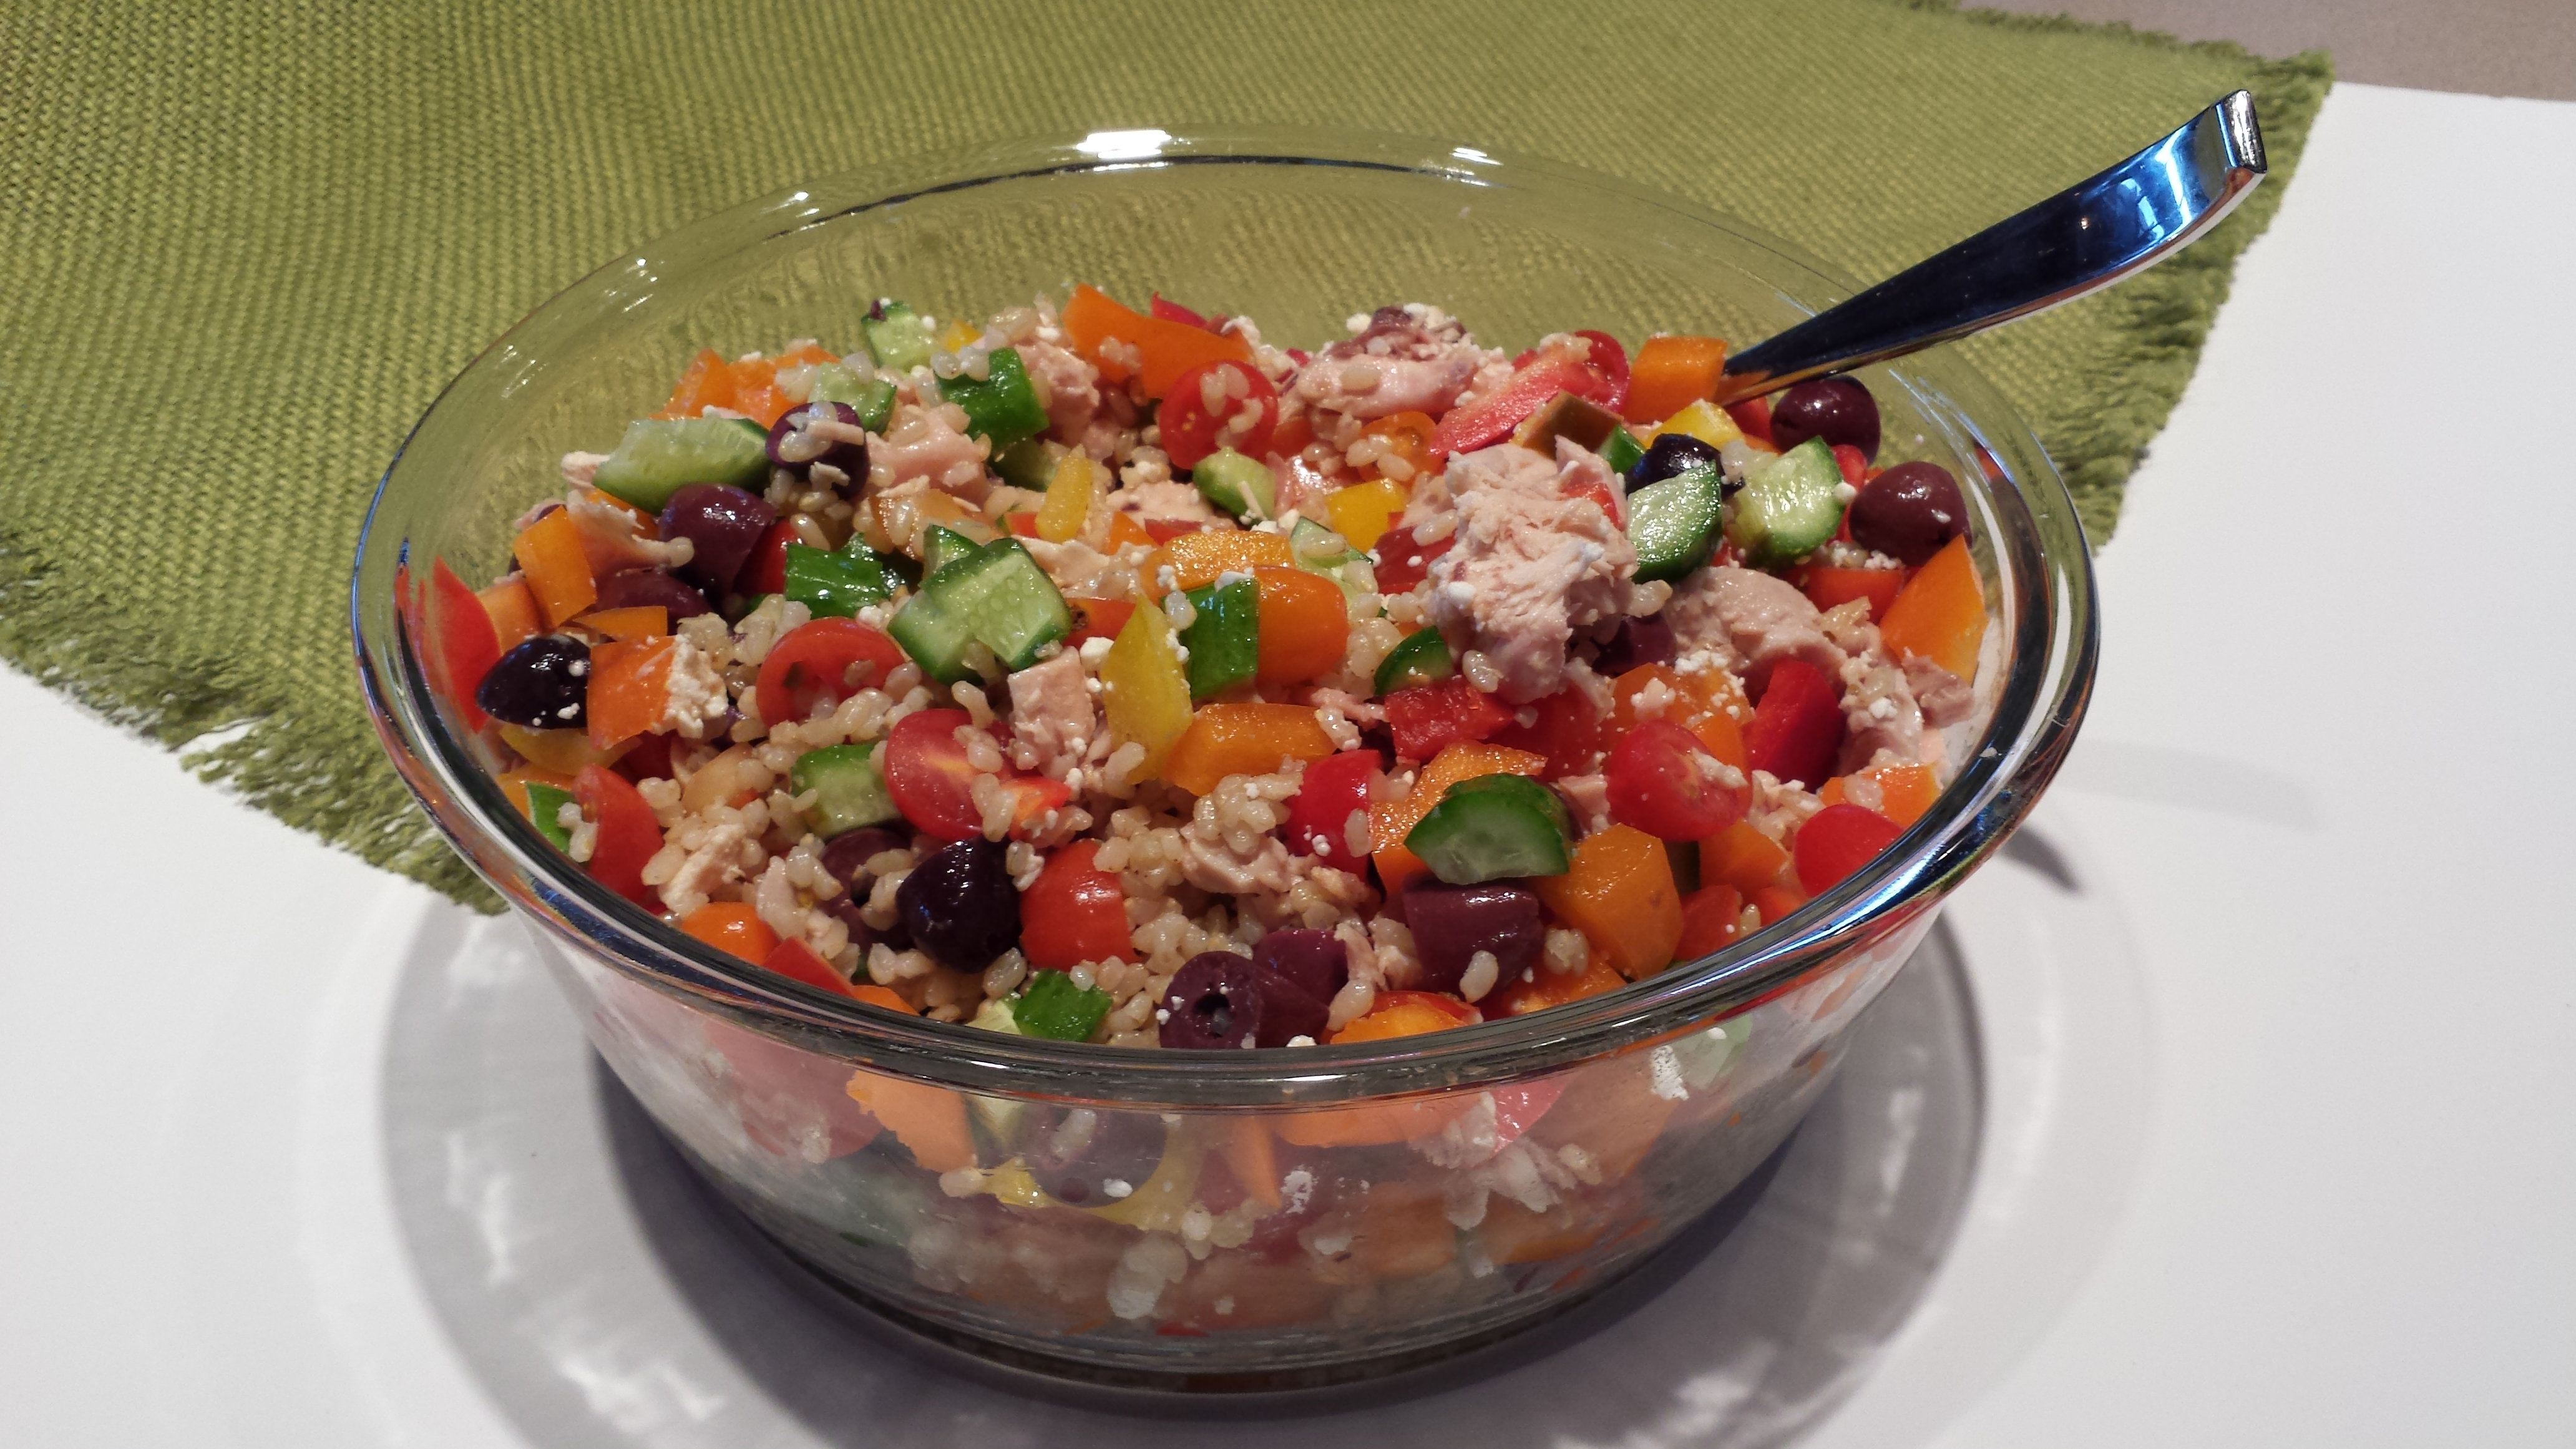 Greek Brown Rice Salad Recipe by Deborah Enos One Minute Wellness Coach